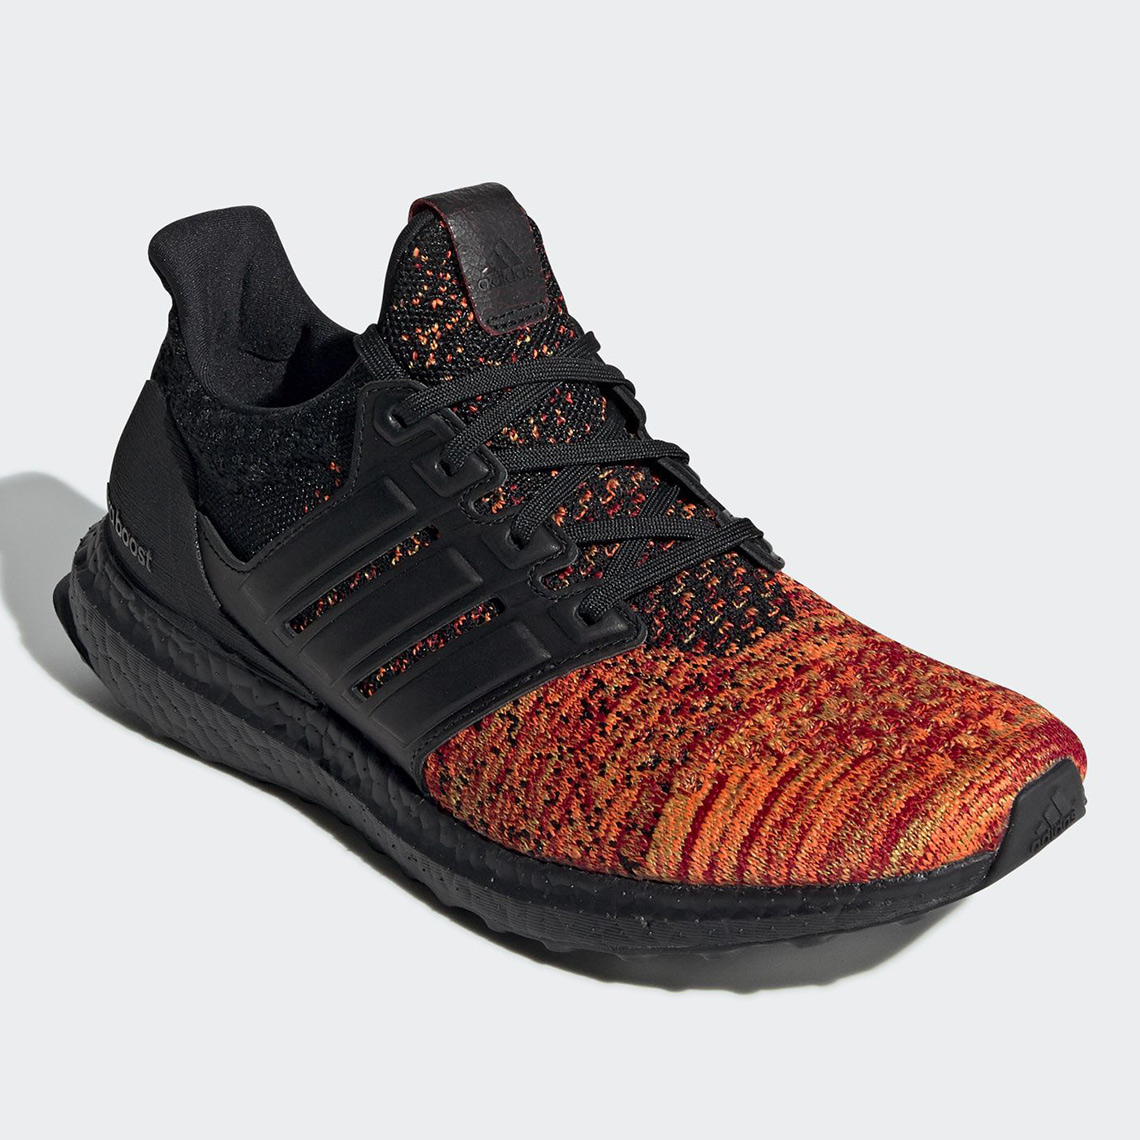 adidas-ultra-boost-game-of-thrones-house-targaryen-ee3709-16.jpg